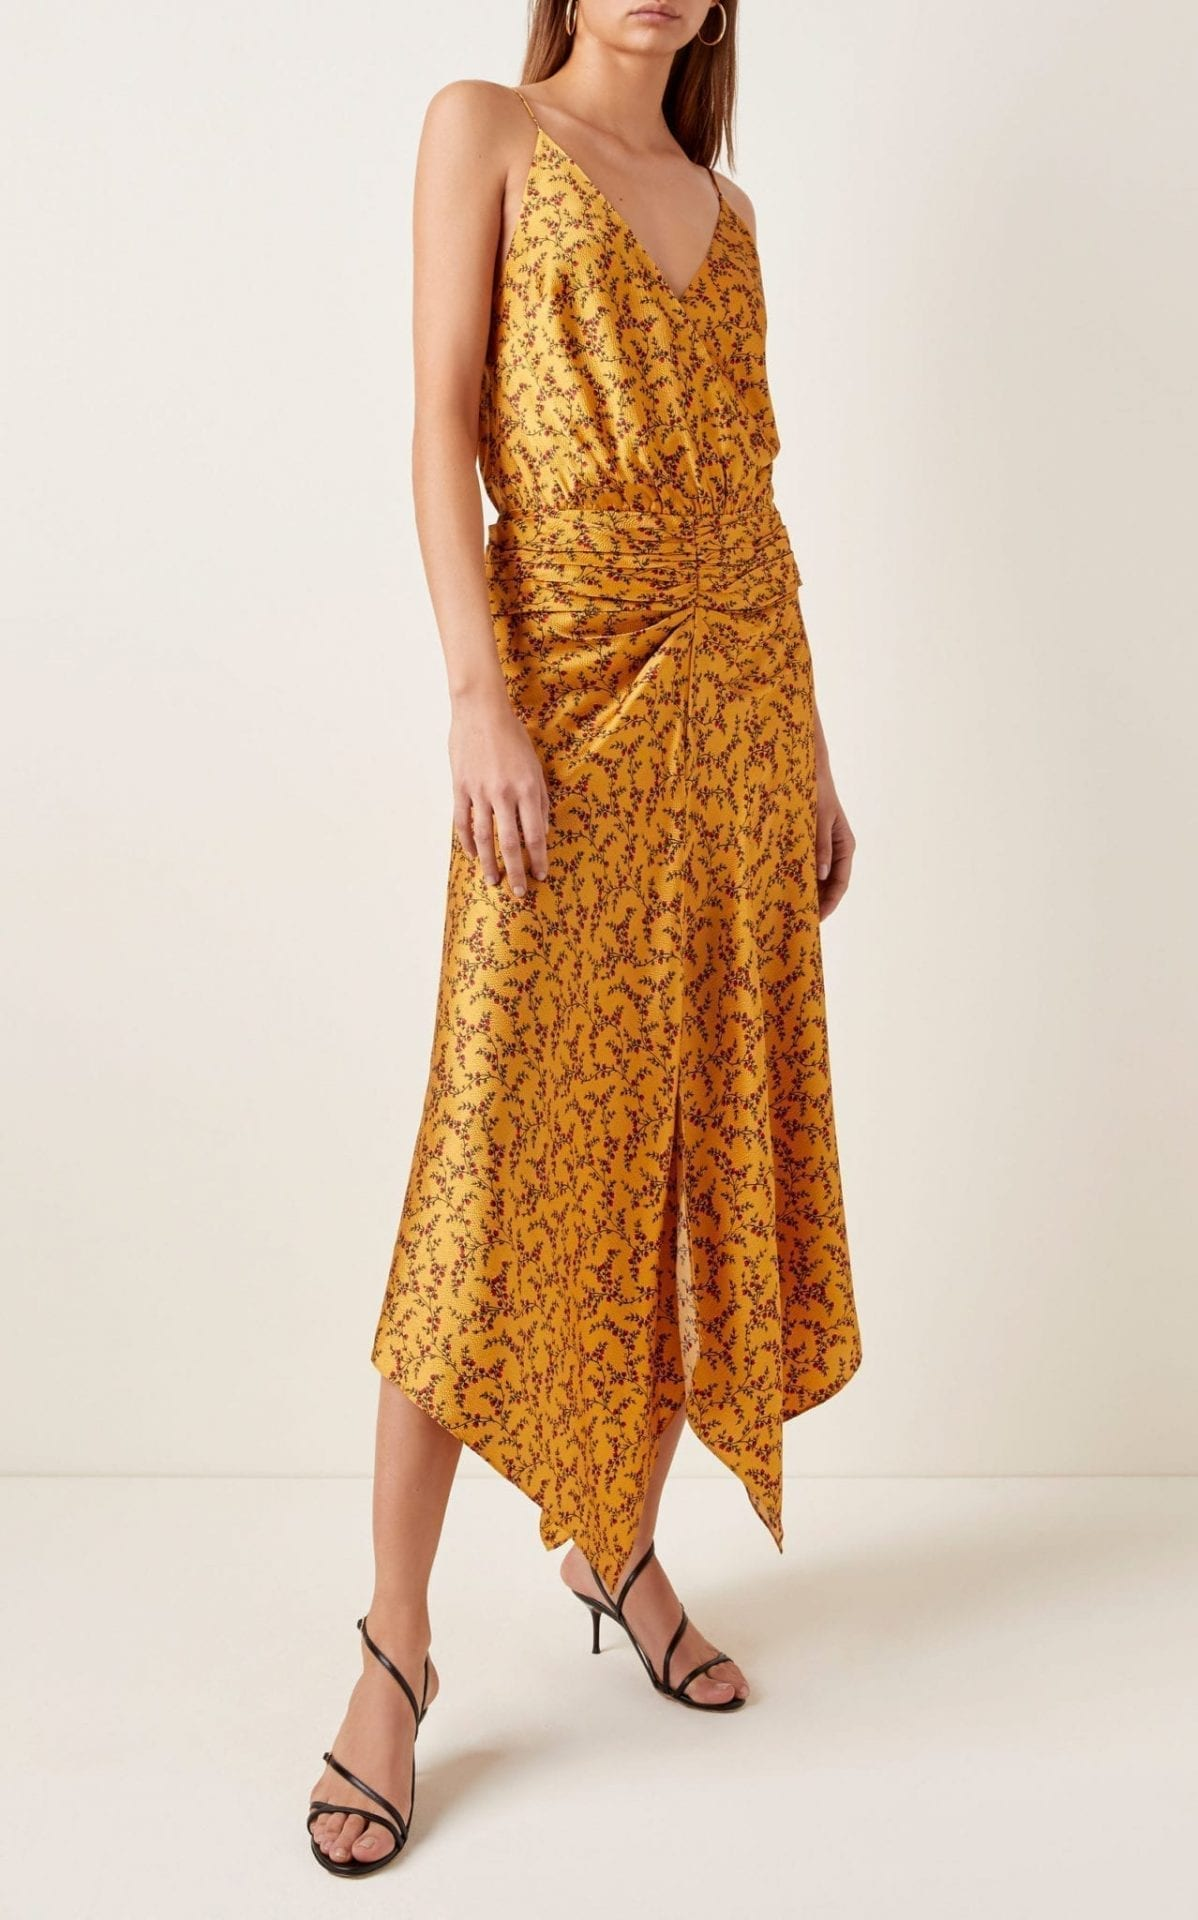 JONATHAN SIMKHAI Asymmetric Ruched Printed Silk Maxi Dress